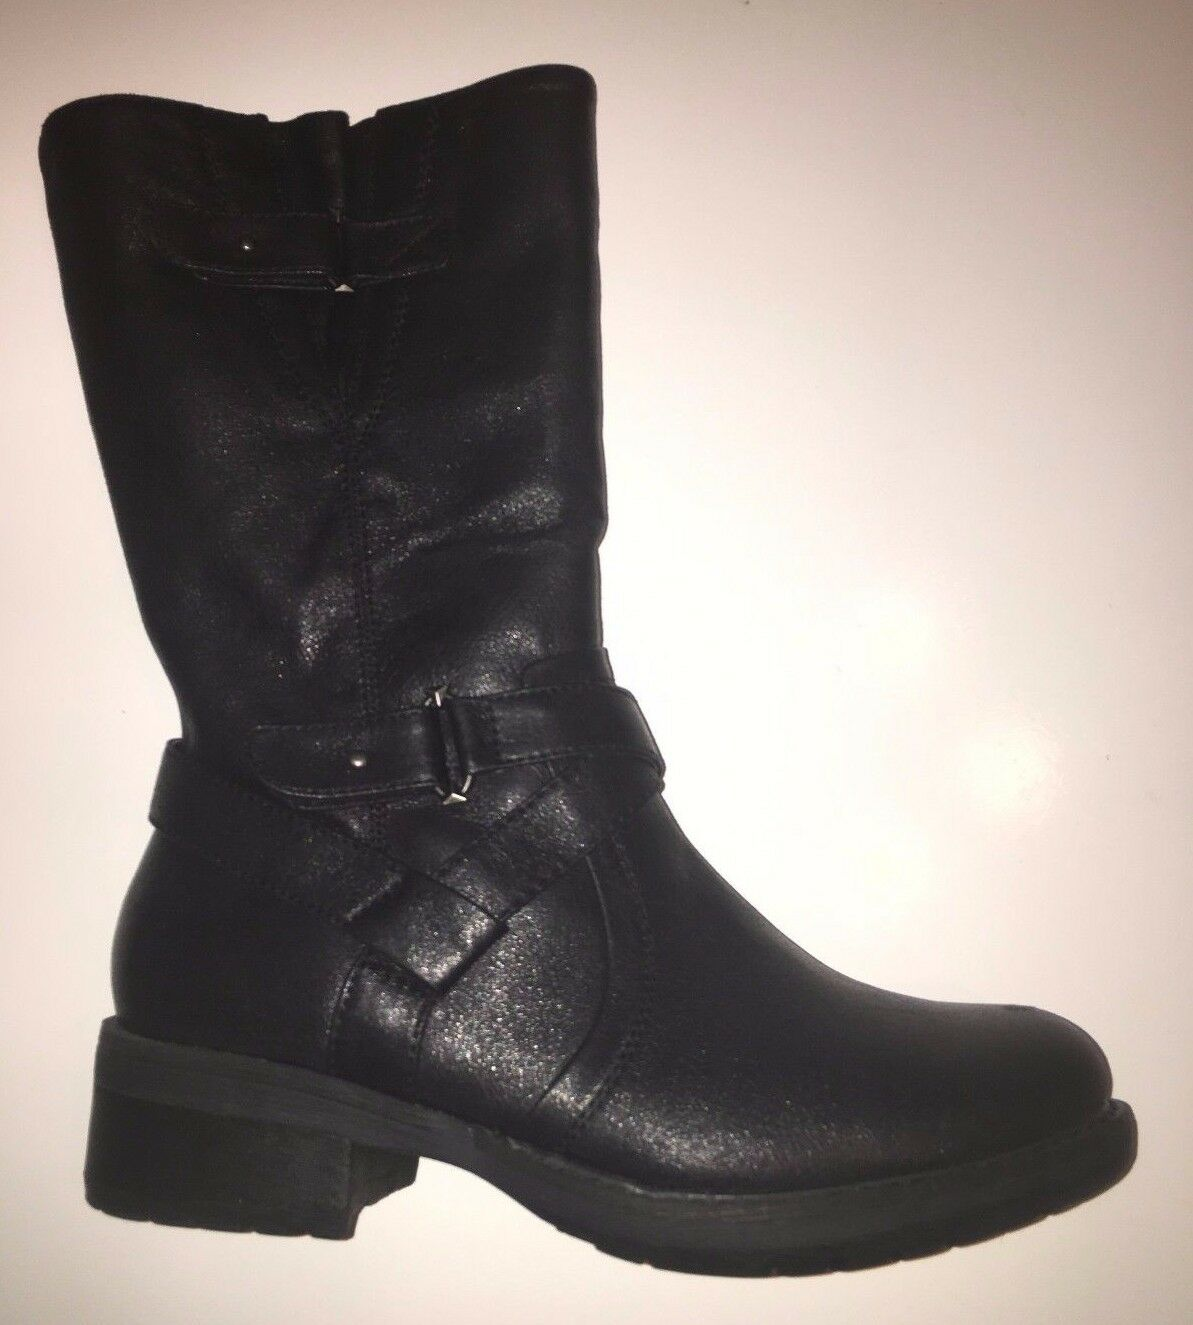 NEW  Bare Traps Women's Harly Mid-Calf Boots shoes Sz 6